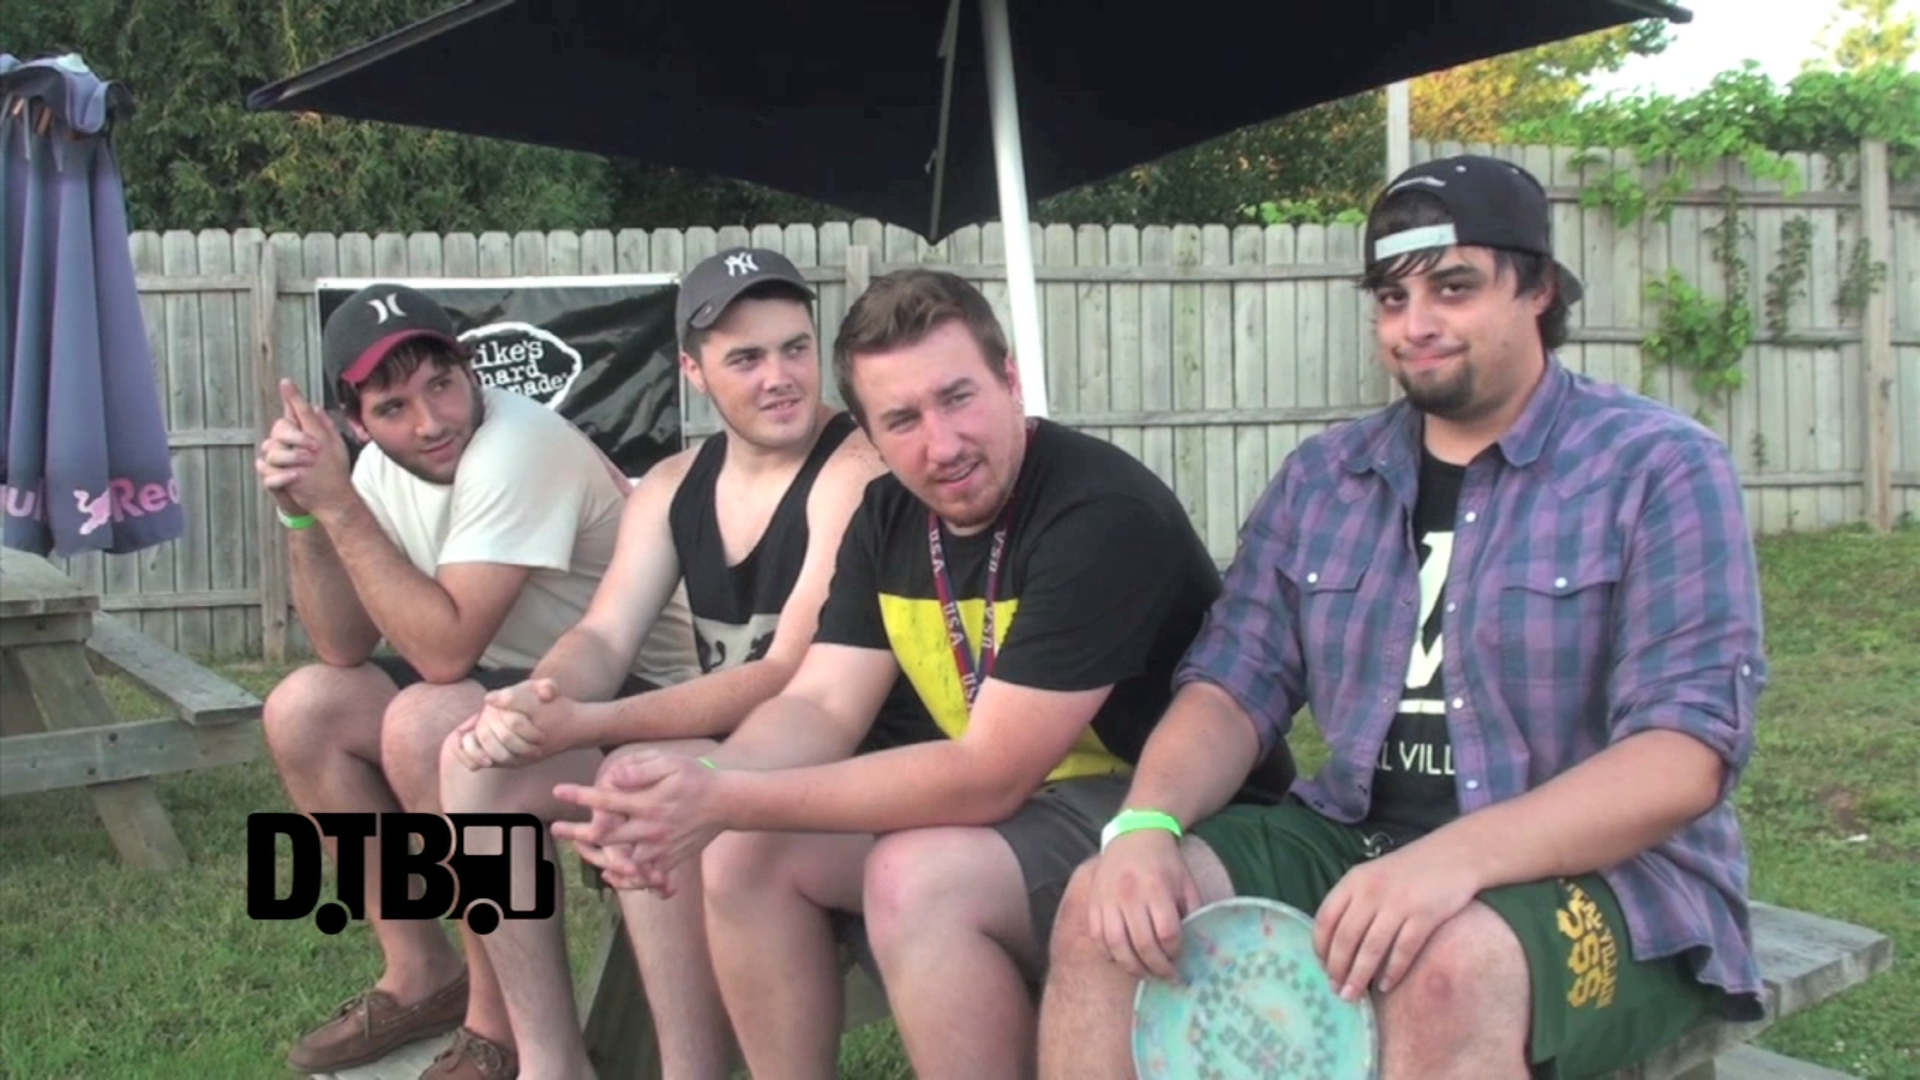 Giants at Large – TOUR TIPS [VIDEO]